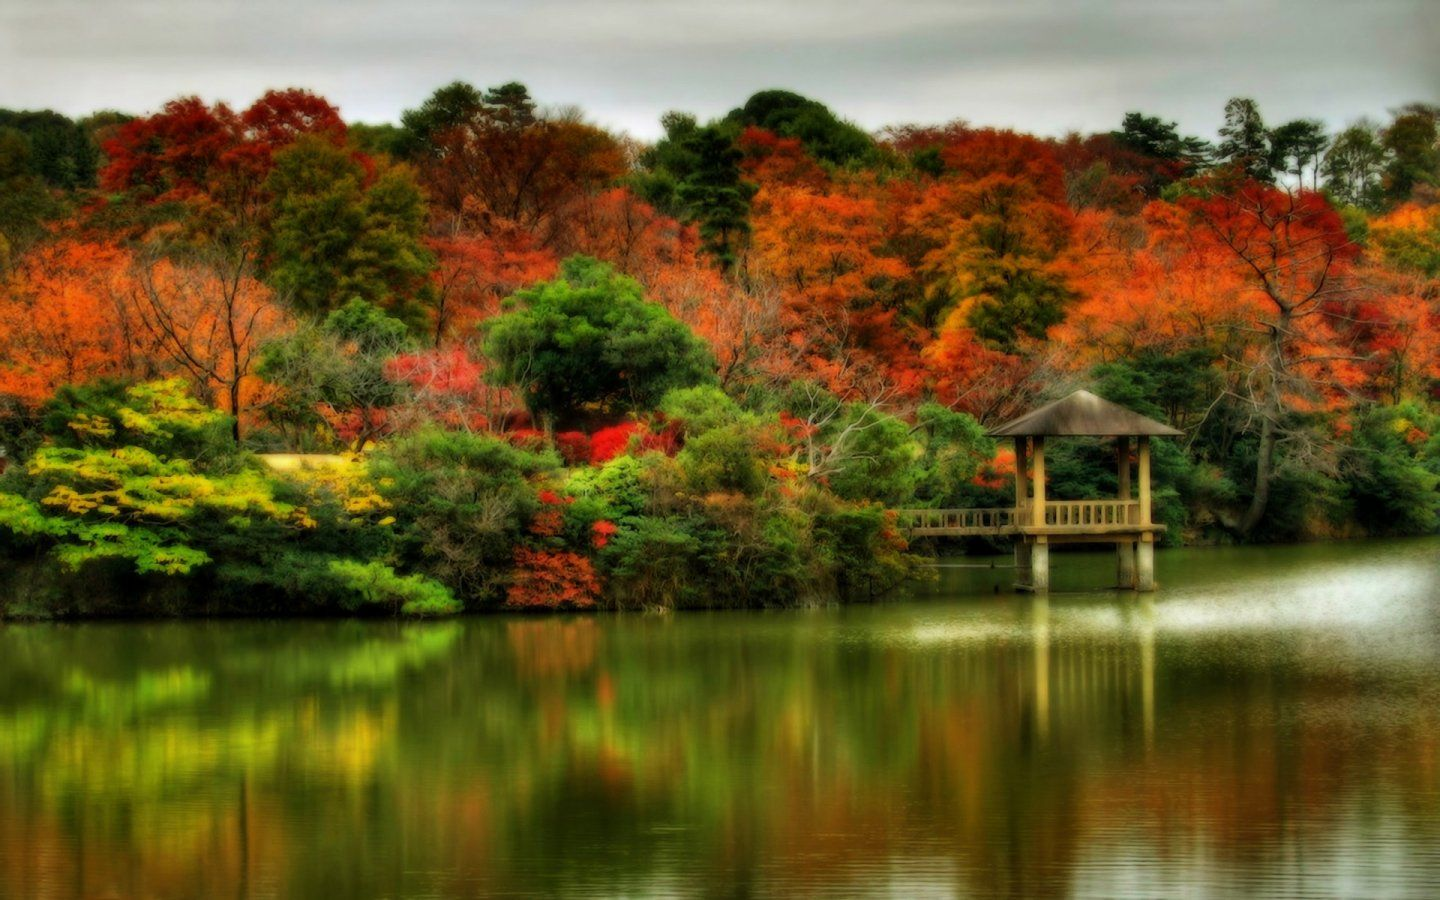 1440x900 Autumn Photos Beautiful Autumn Scenes 1440x900 Wallpapers 1440x900 Wallpapers Desktop Wallpaper Fall Autumn Scenery Fall Scenery Pictures